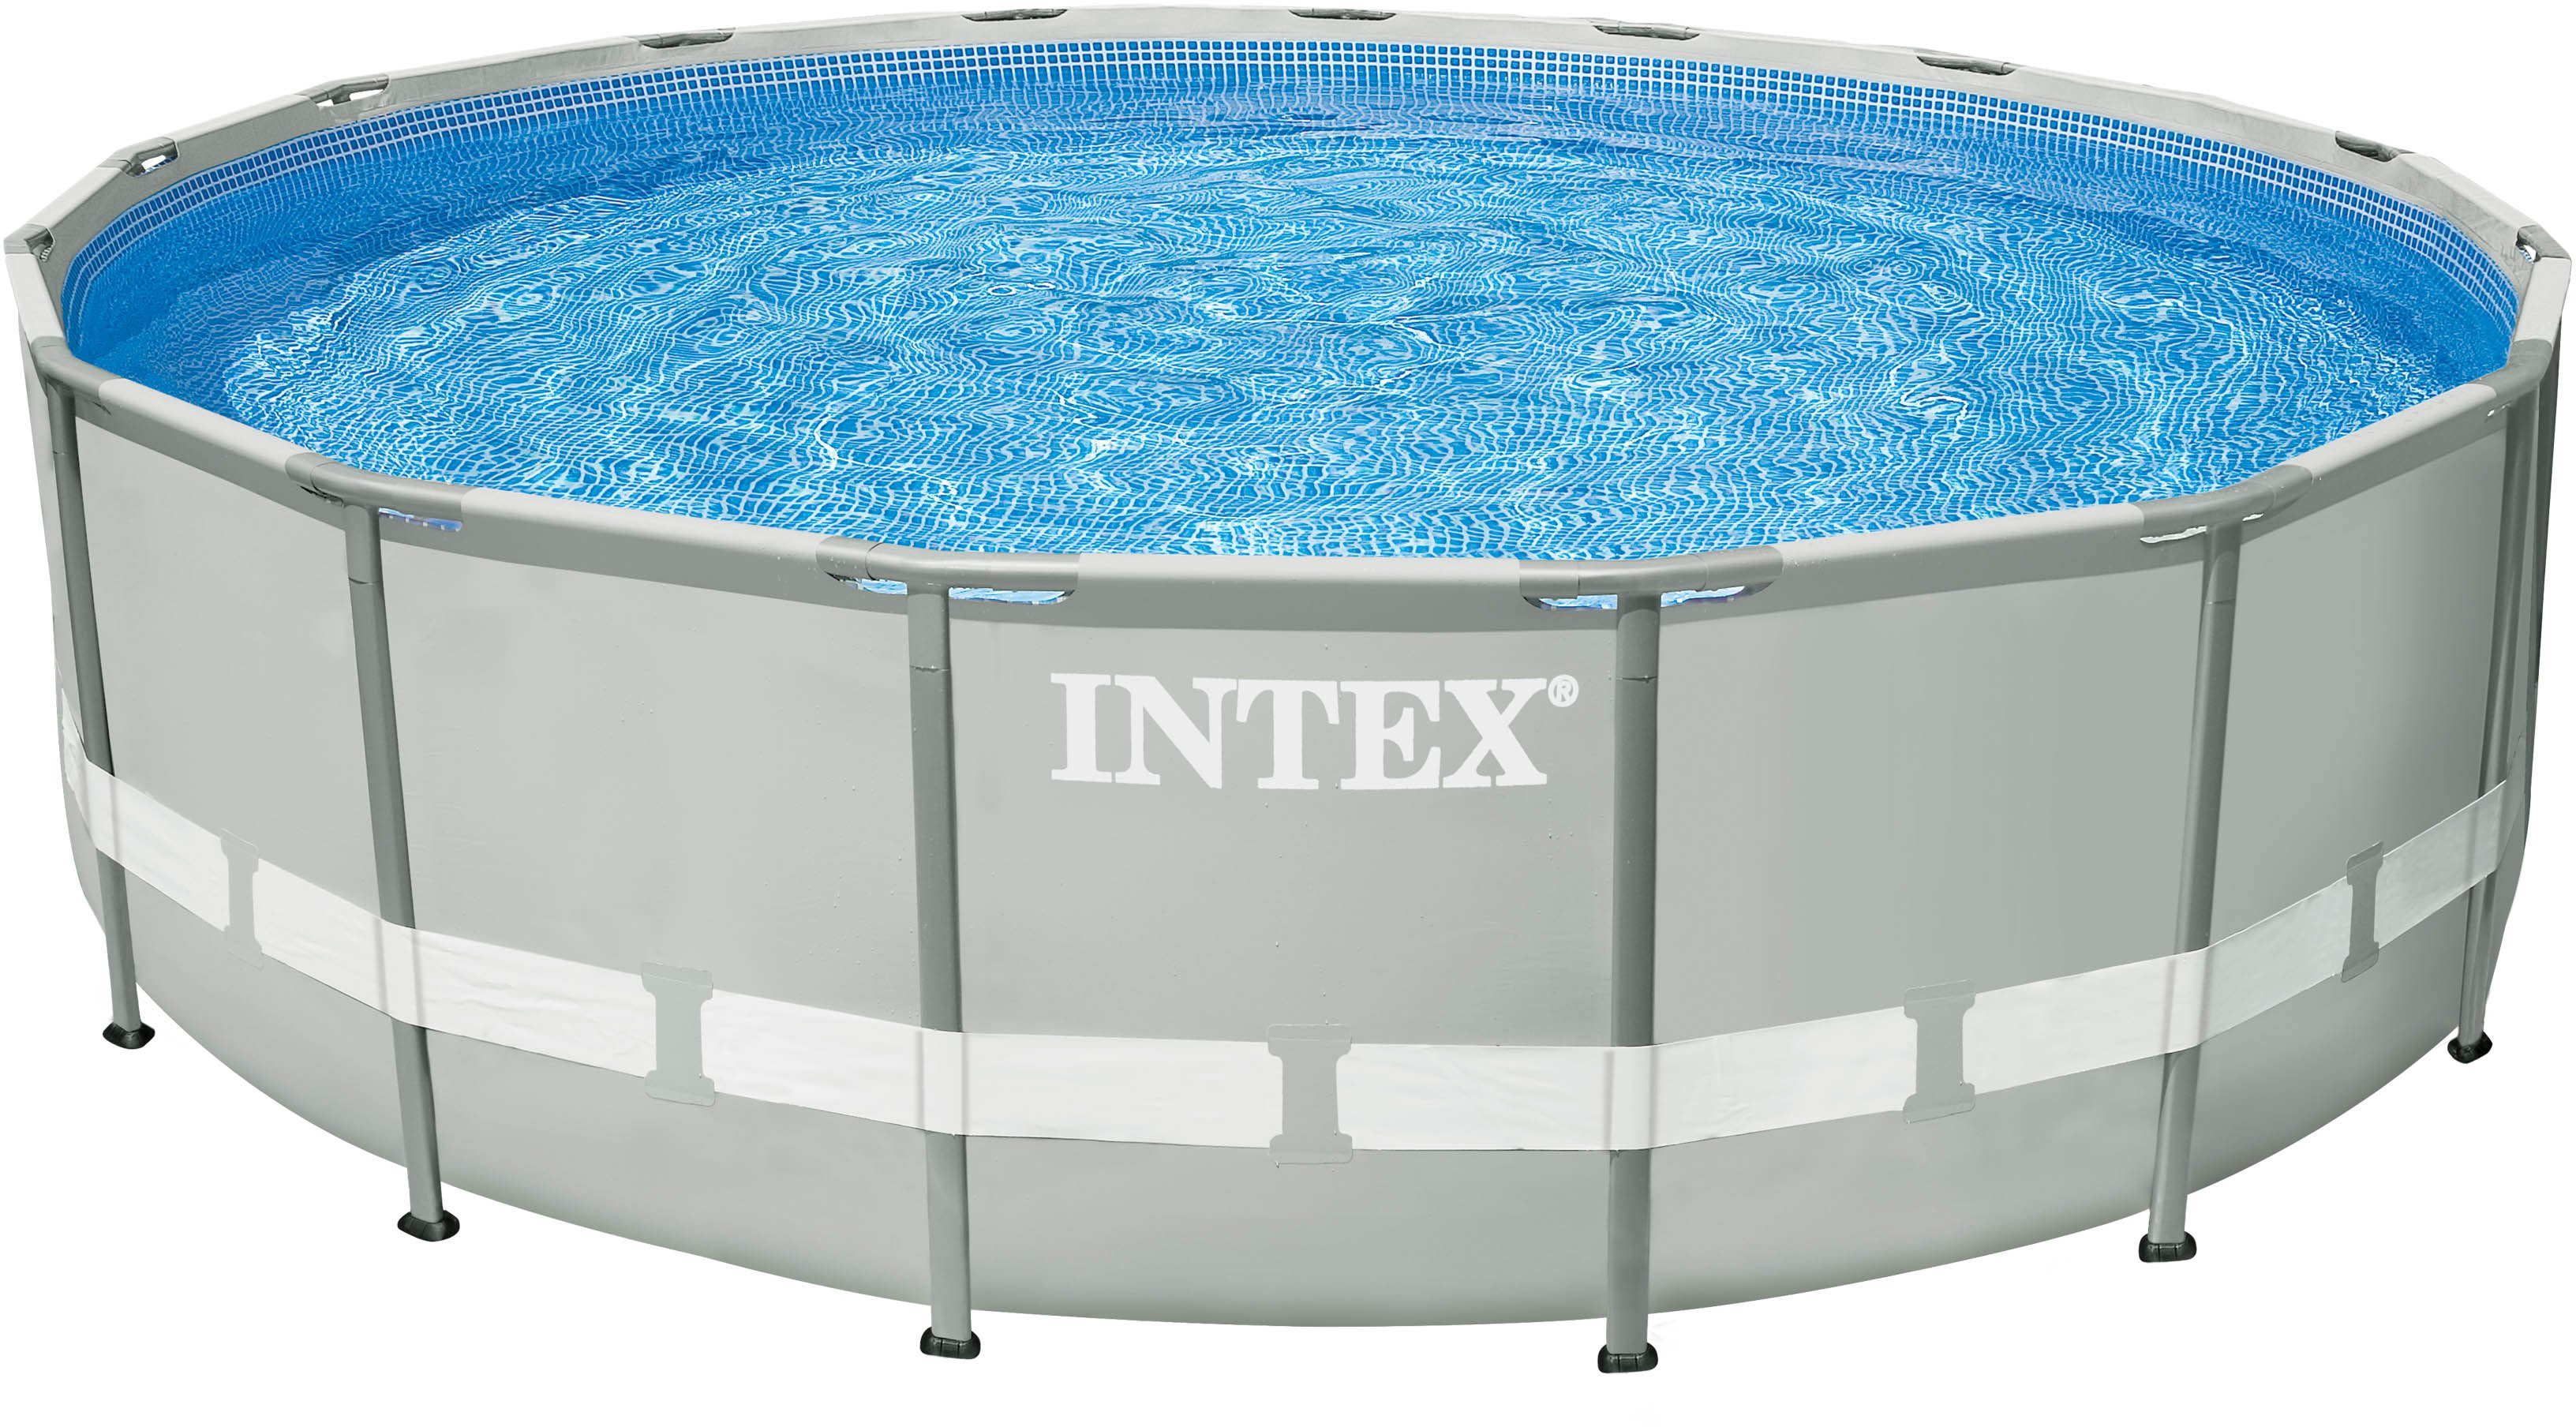 Intex Pool-Set, mit Kartuschenfilteranlage, Ø 427 cm, »Frame Pool Ultra Komplett-Set«